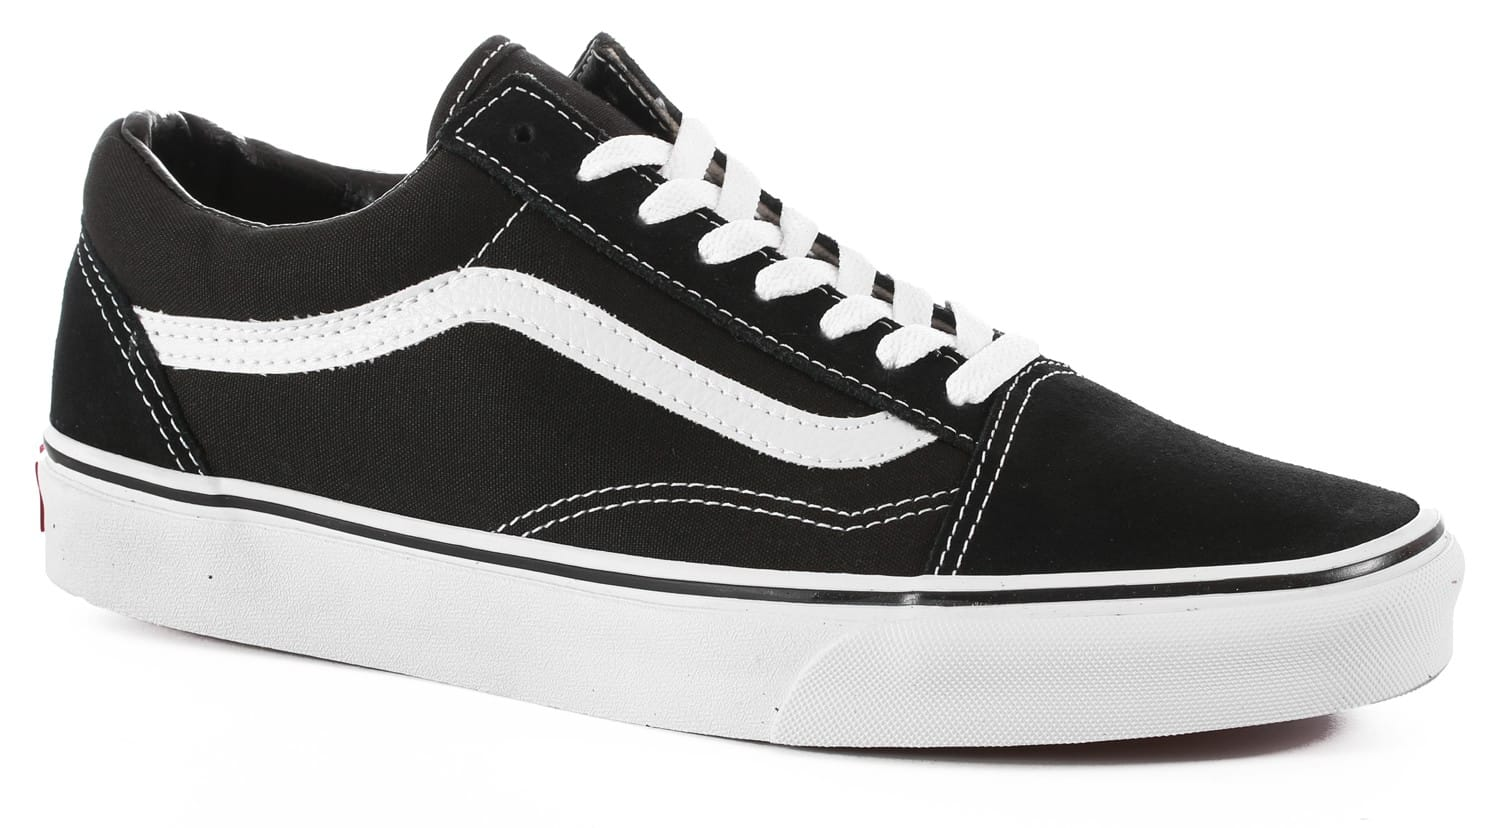 vans old skool skate shoes black white free shipping. Black Bedroom Furniture Sets. Home Design Ideas